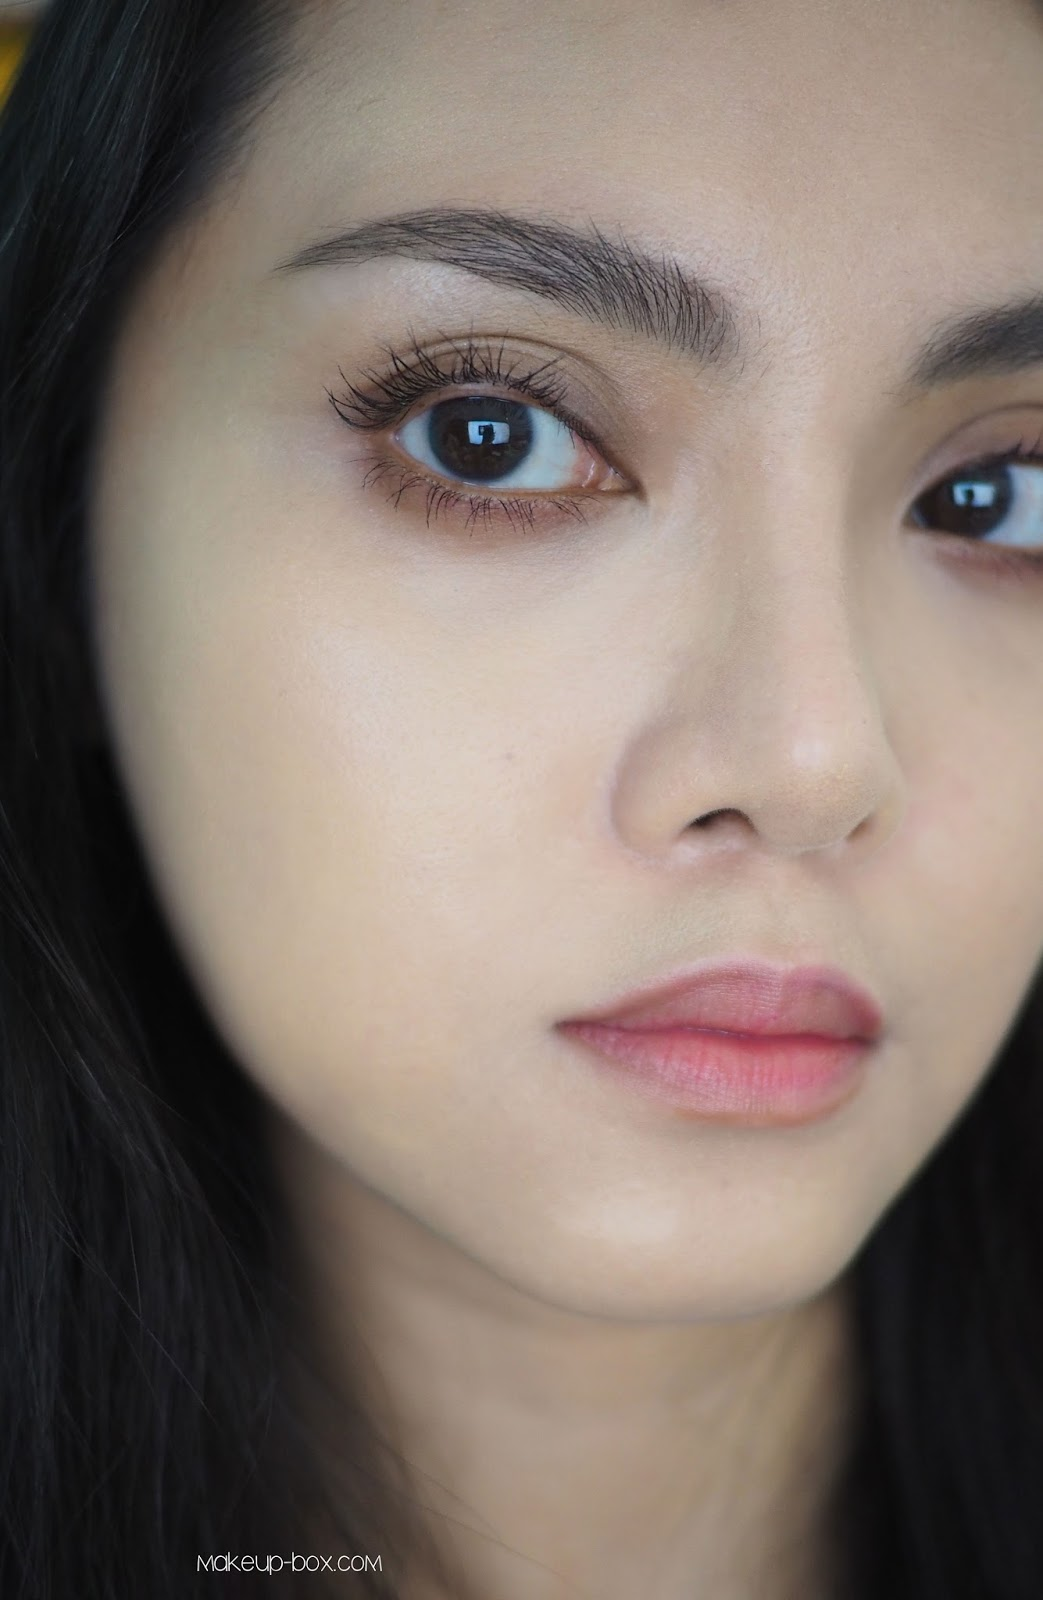 The Makeup Box: Shu Uemura Petal Skin Foundation